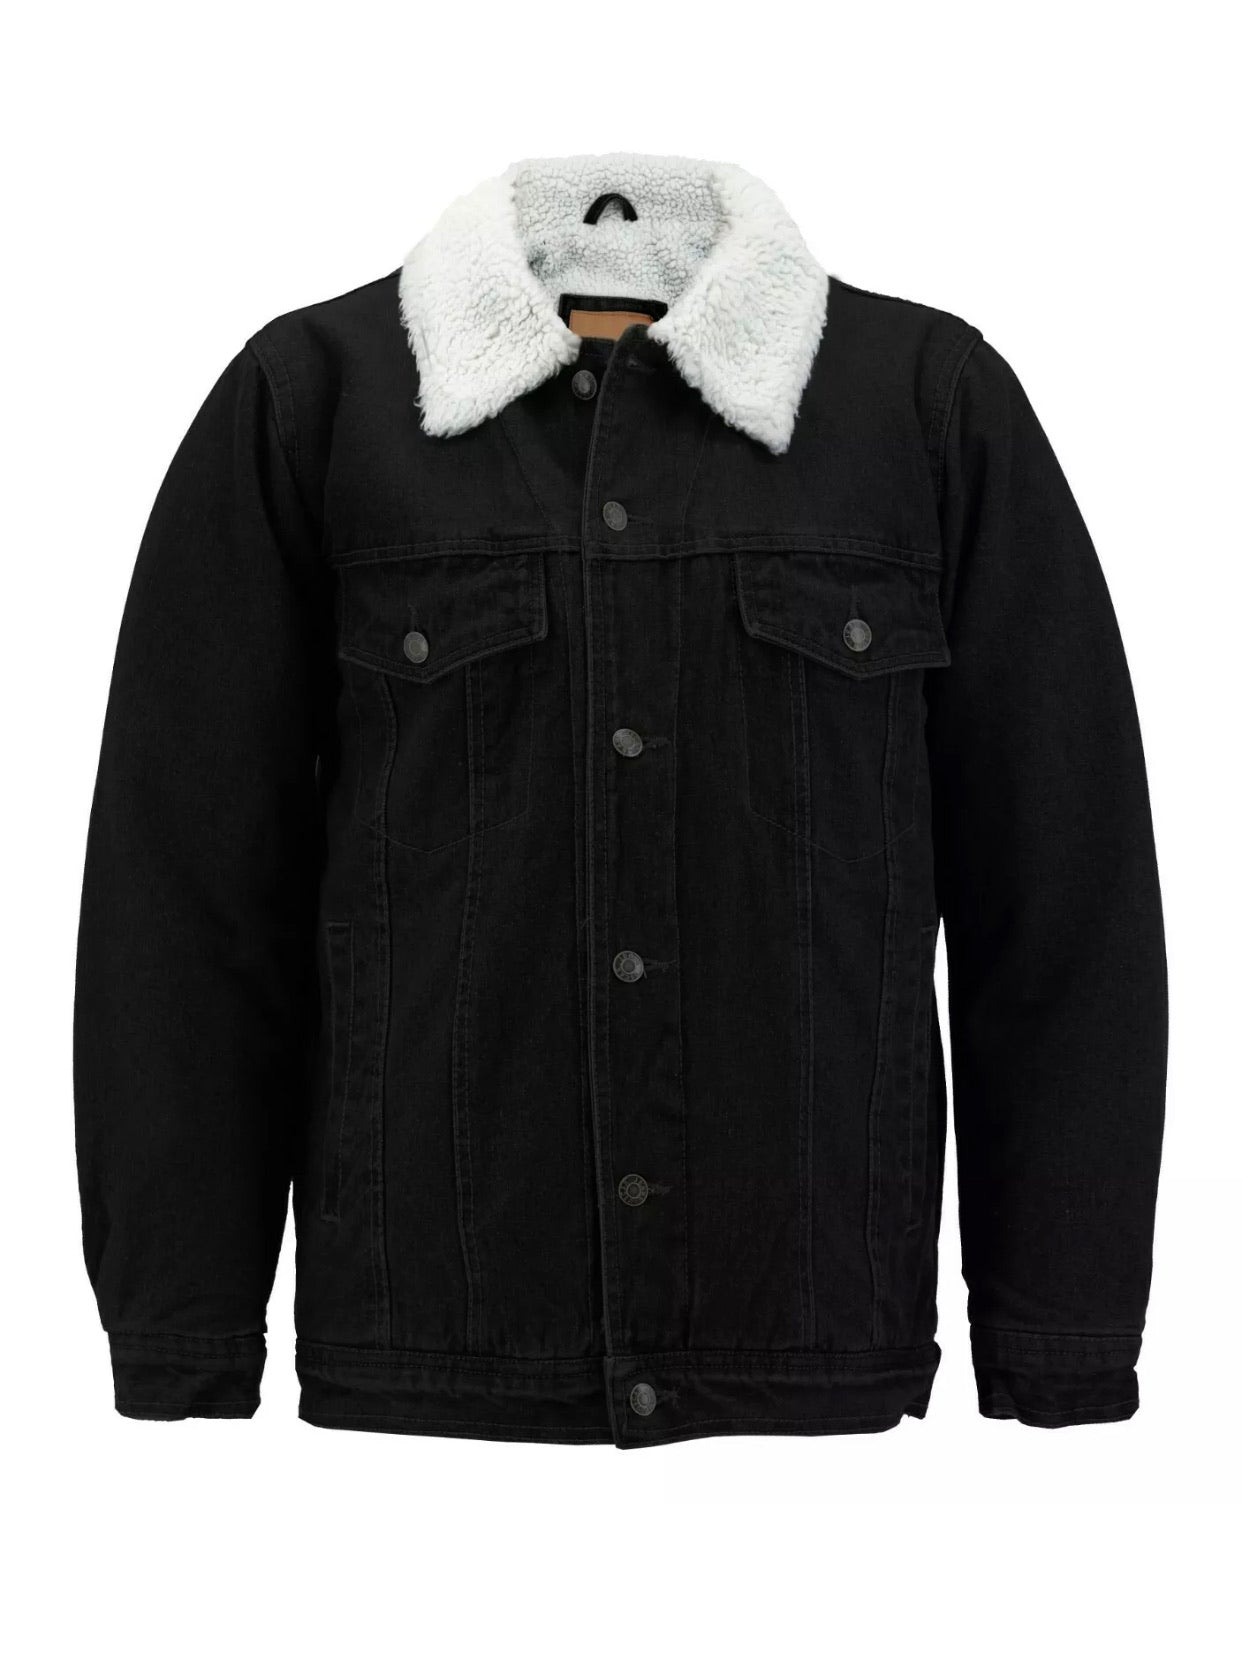 The Sherpa Denim Jacket - Up to Size 4XL